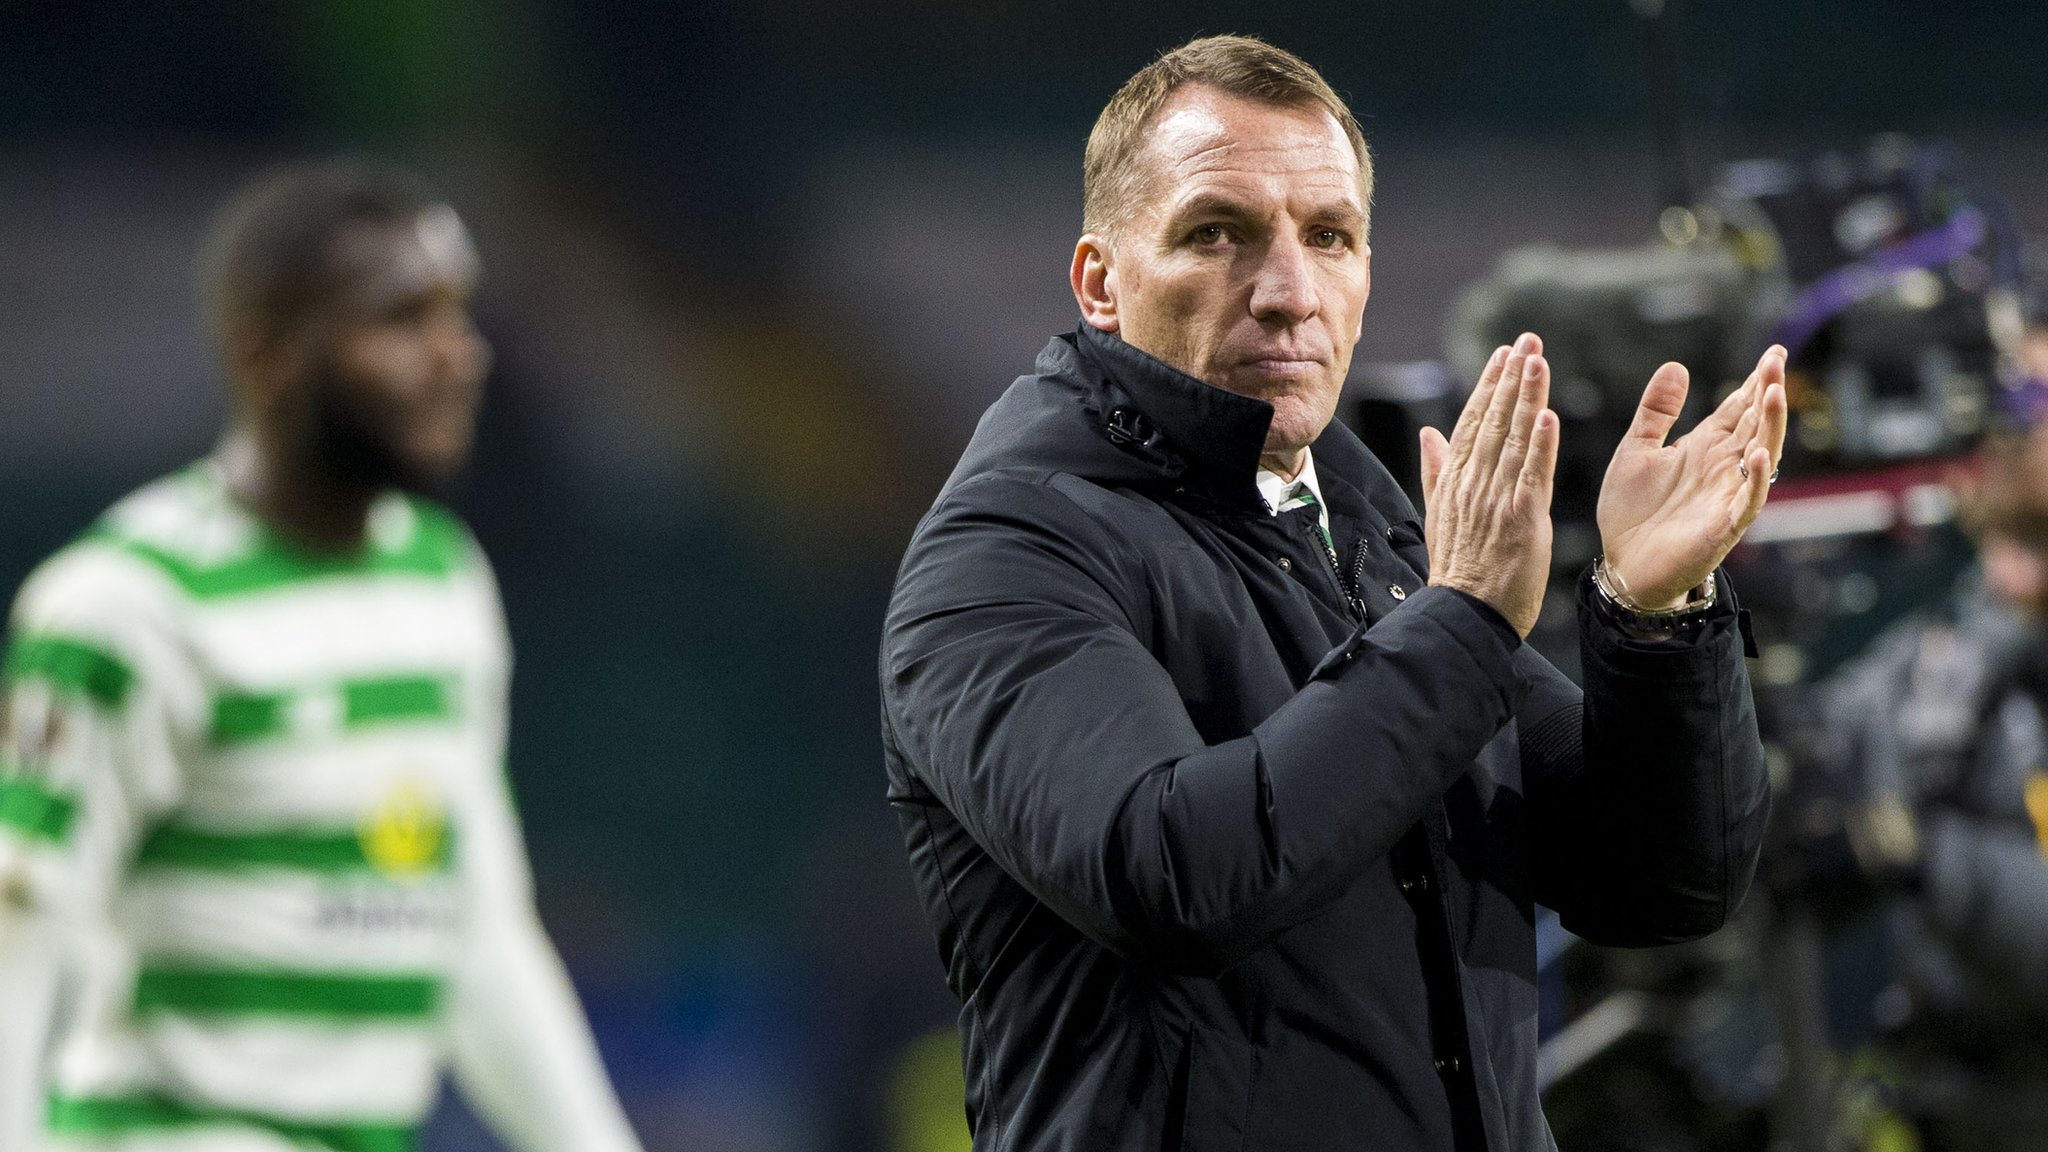 Europa League: An in-depth look at Celtic's downfall against Valencia